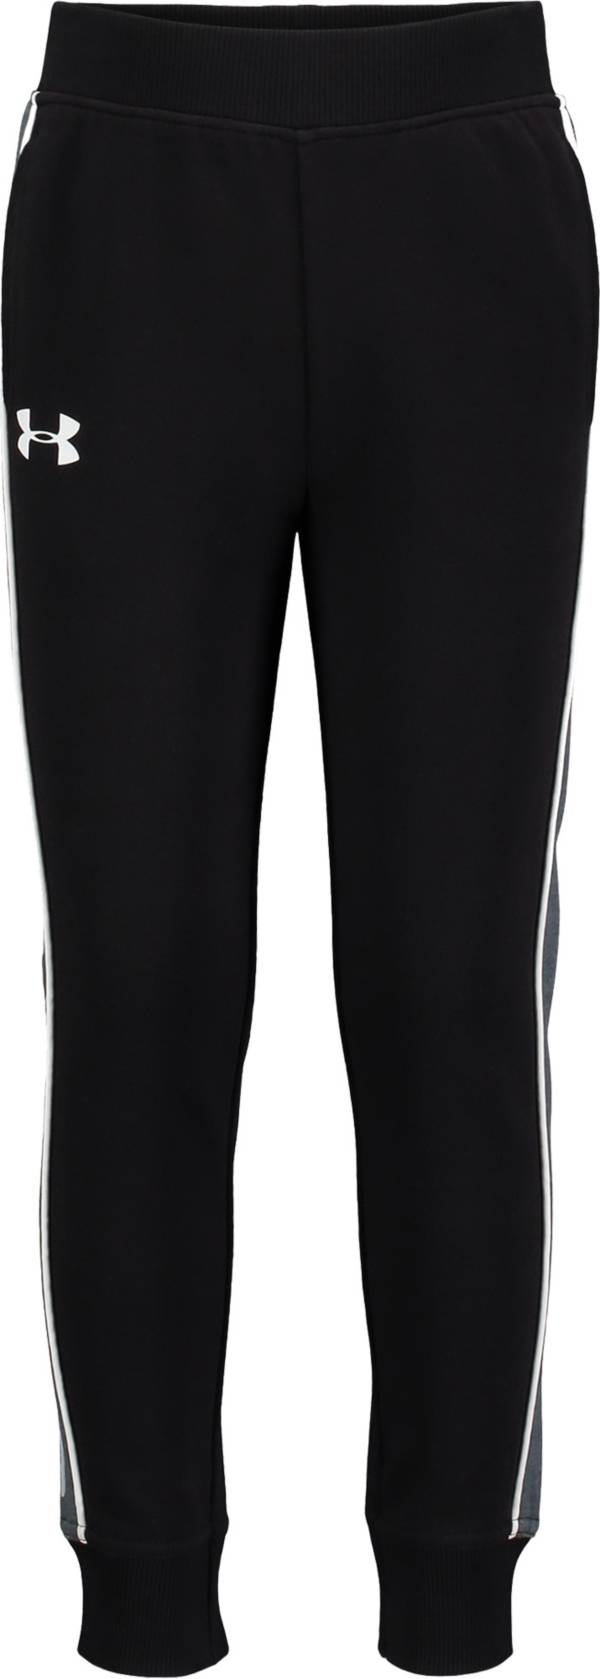 Under Armour Boys' Rival Terry Jogger Pants product image